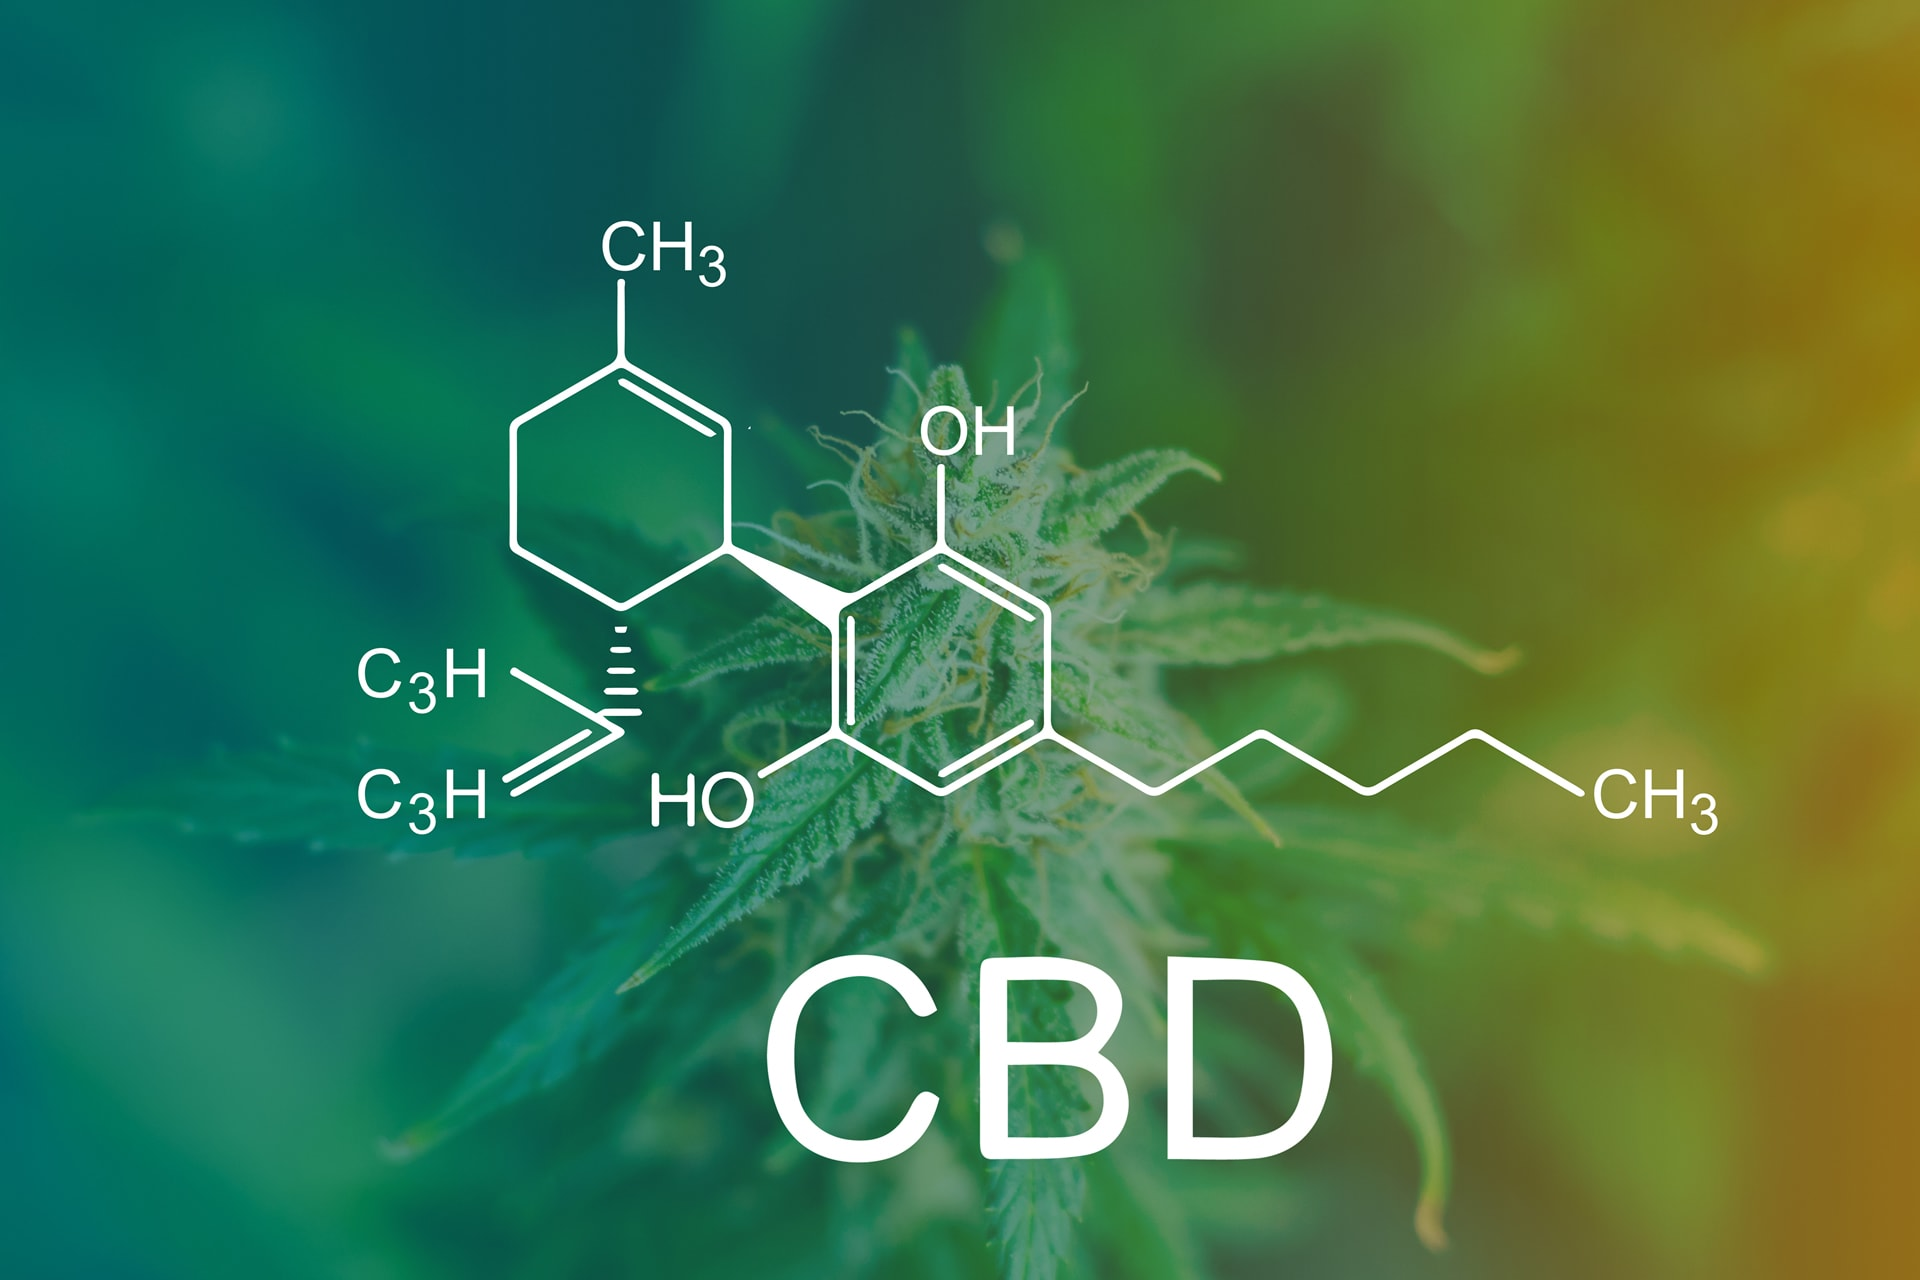 Social Media & Advertising Bans for CBD Products